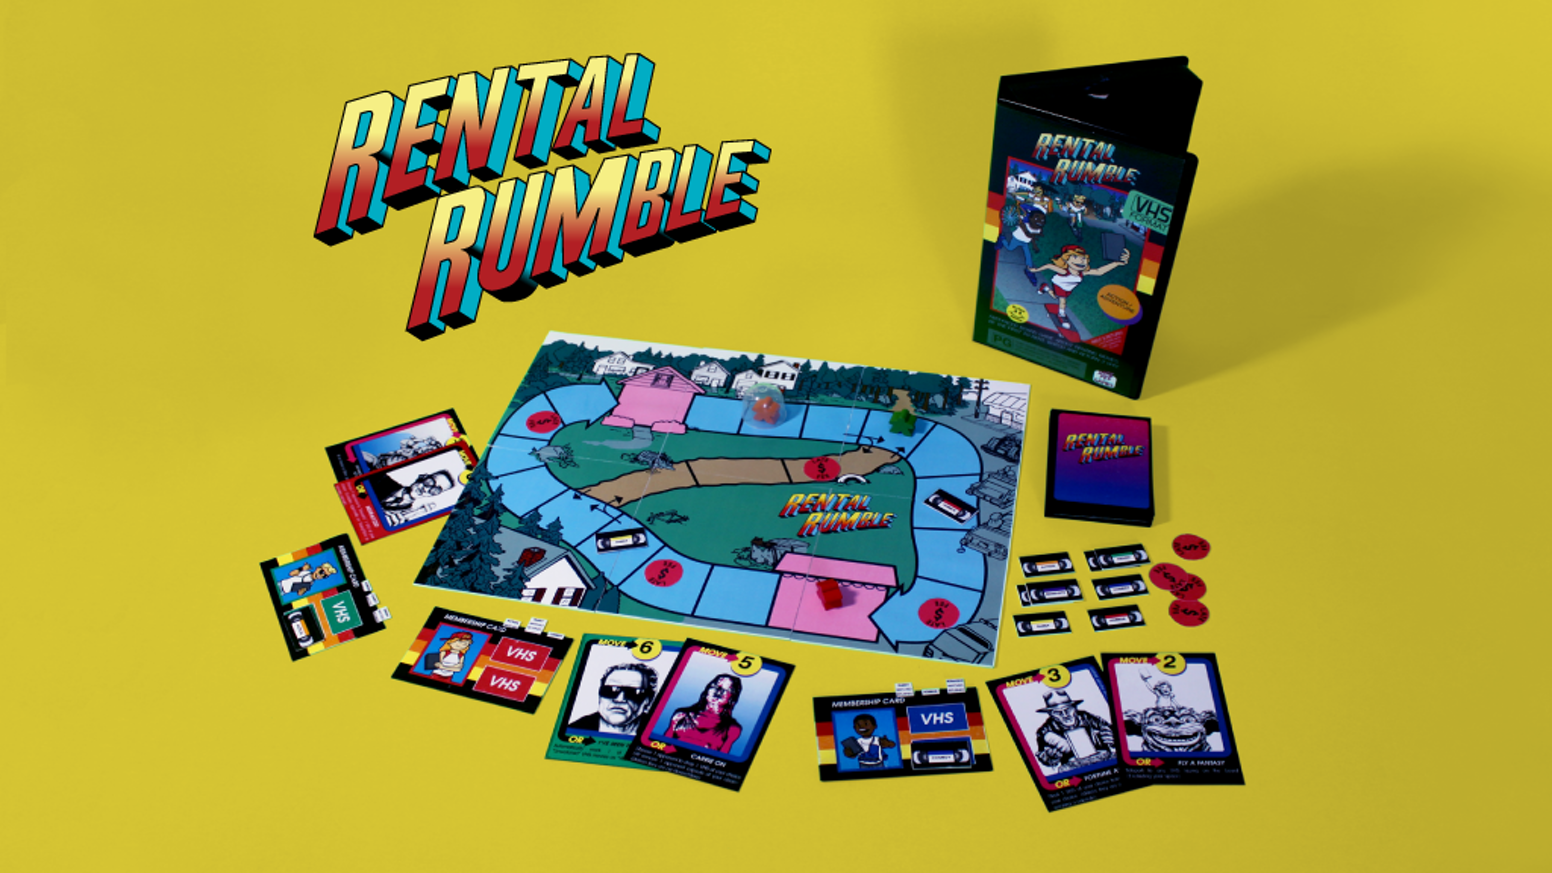 Indie board game celebrating video rental stores and movies from the 80s and 90s.